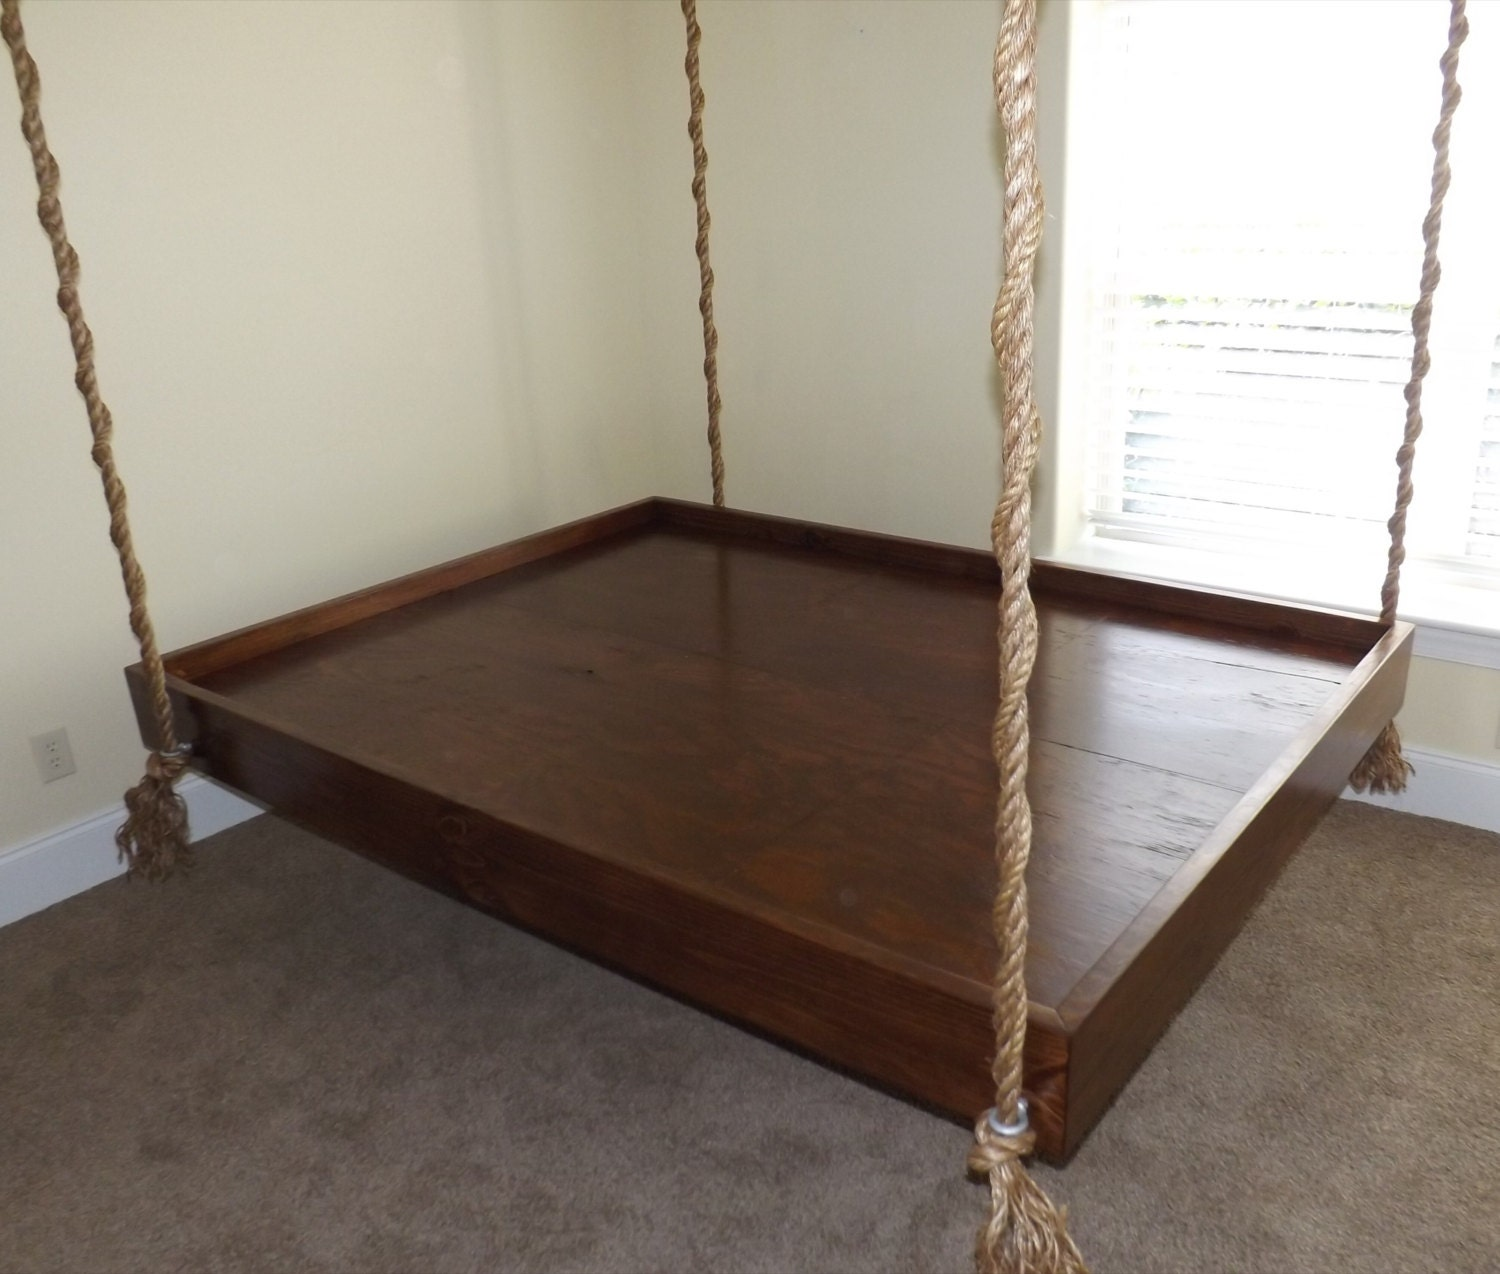 Hanging beds from ceiling for Round hanging porch bed